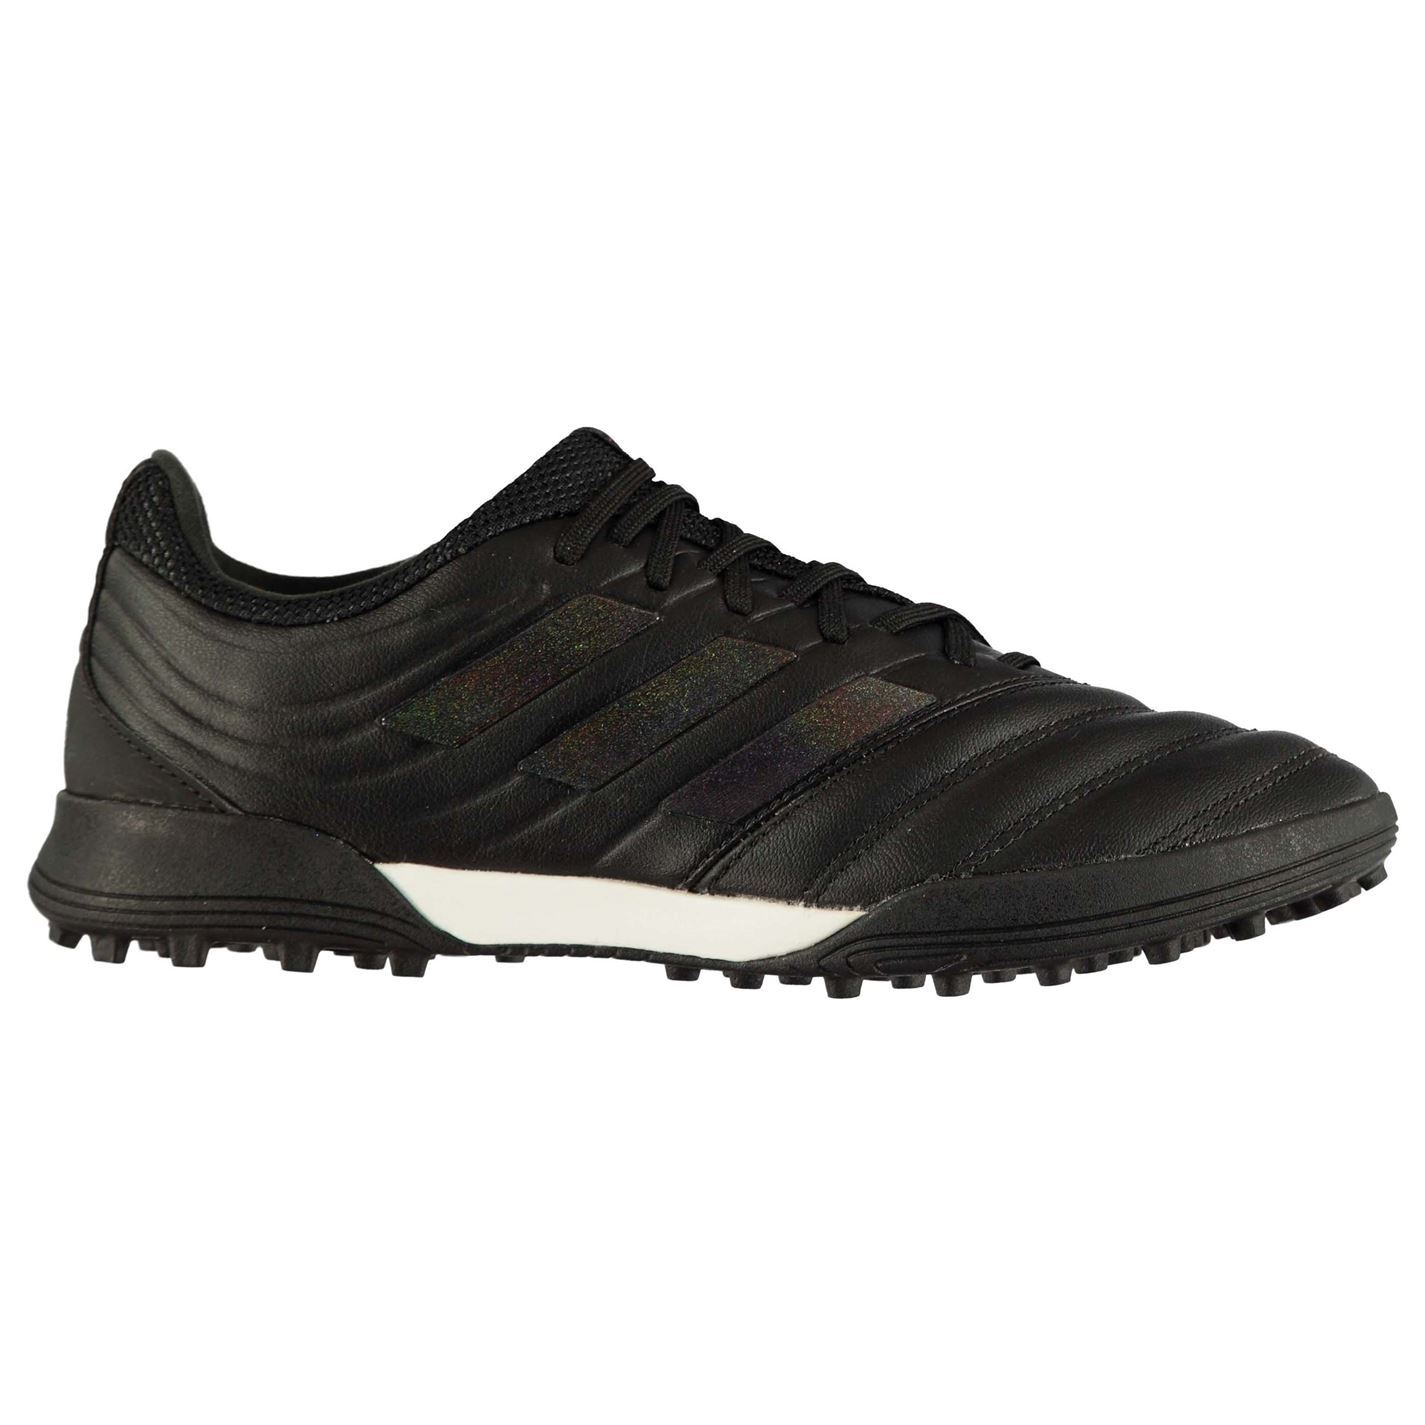 Adidas-Copa-19-3-Astro-Turf-Football-Chaussures-Homme-Football-Entrainement-Baskets miniature 5